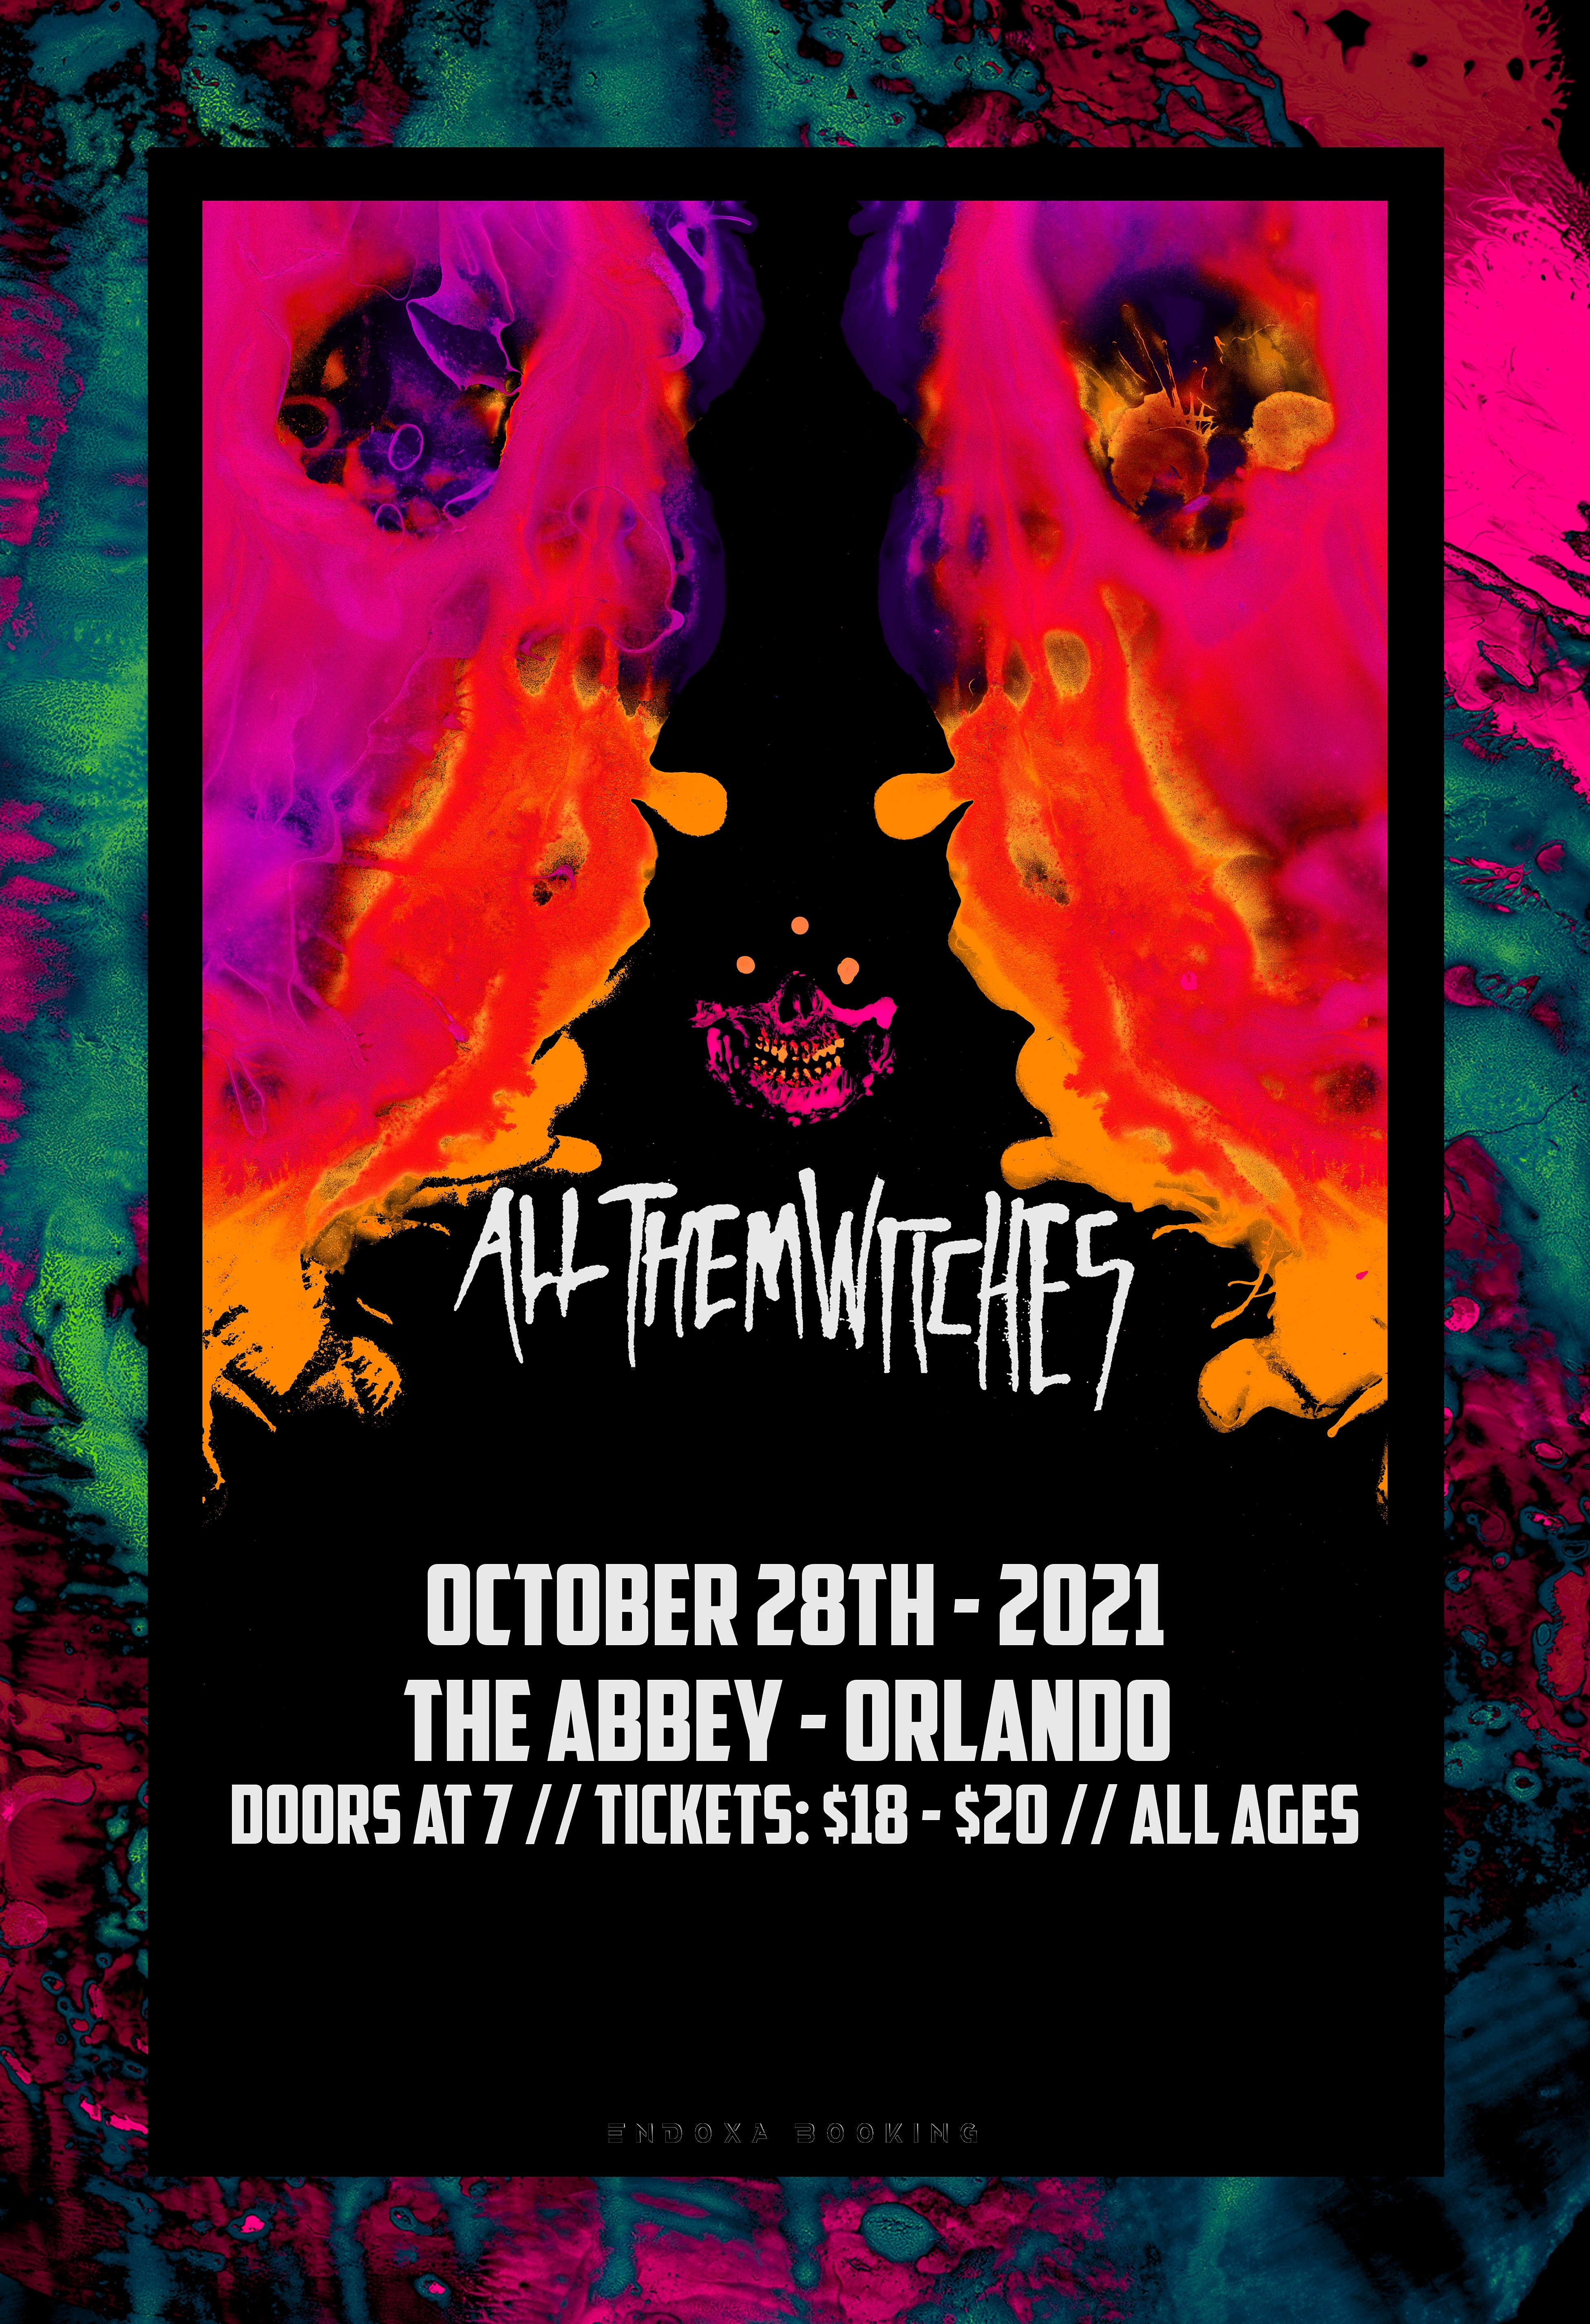 All Them Witches in Orlando at the Abbey